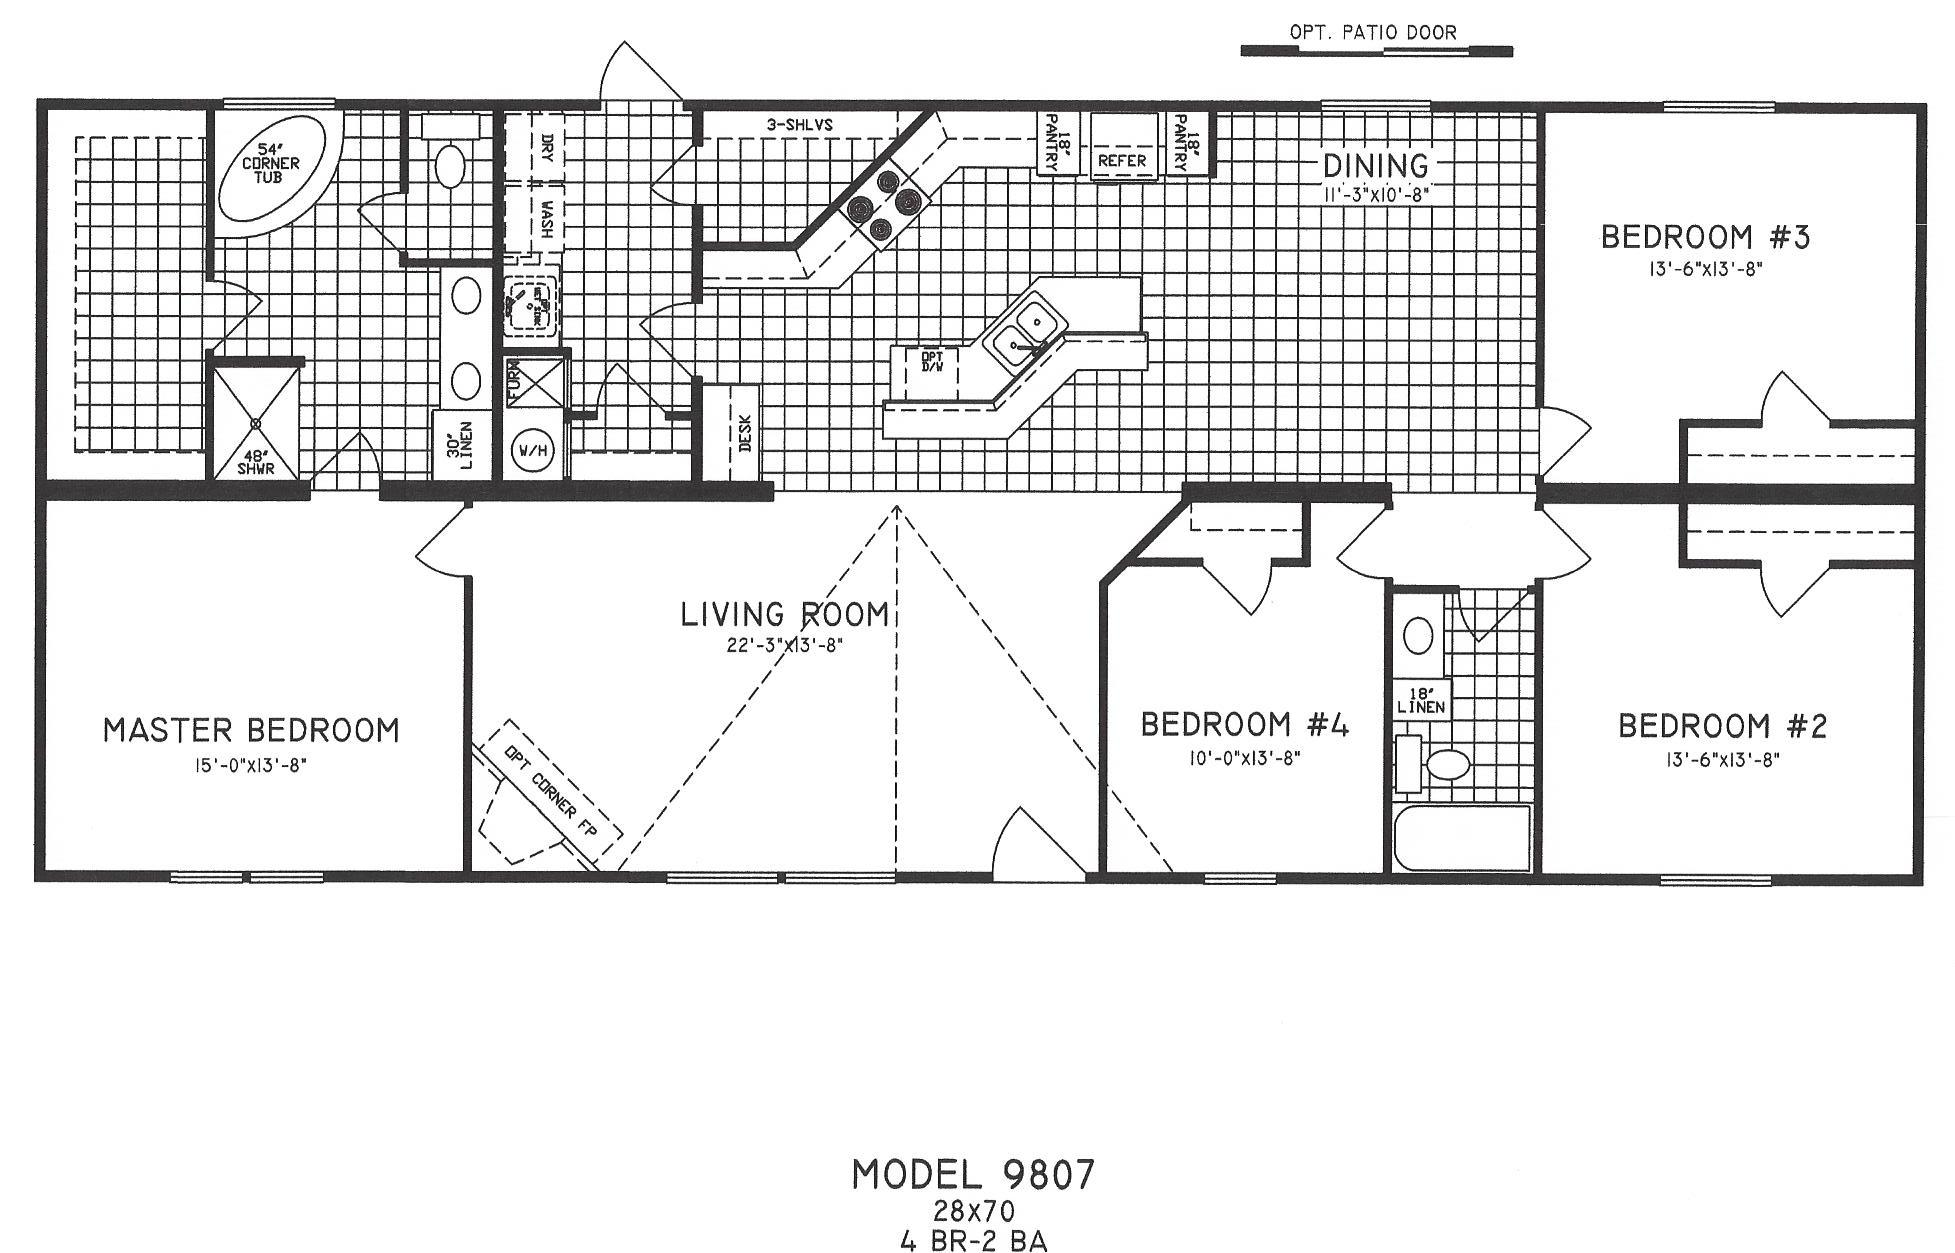 4 Bedroom Floor Plans Modular Home Modular Homes 4 Bedroom Floor Plans